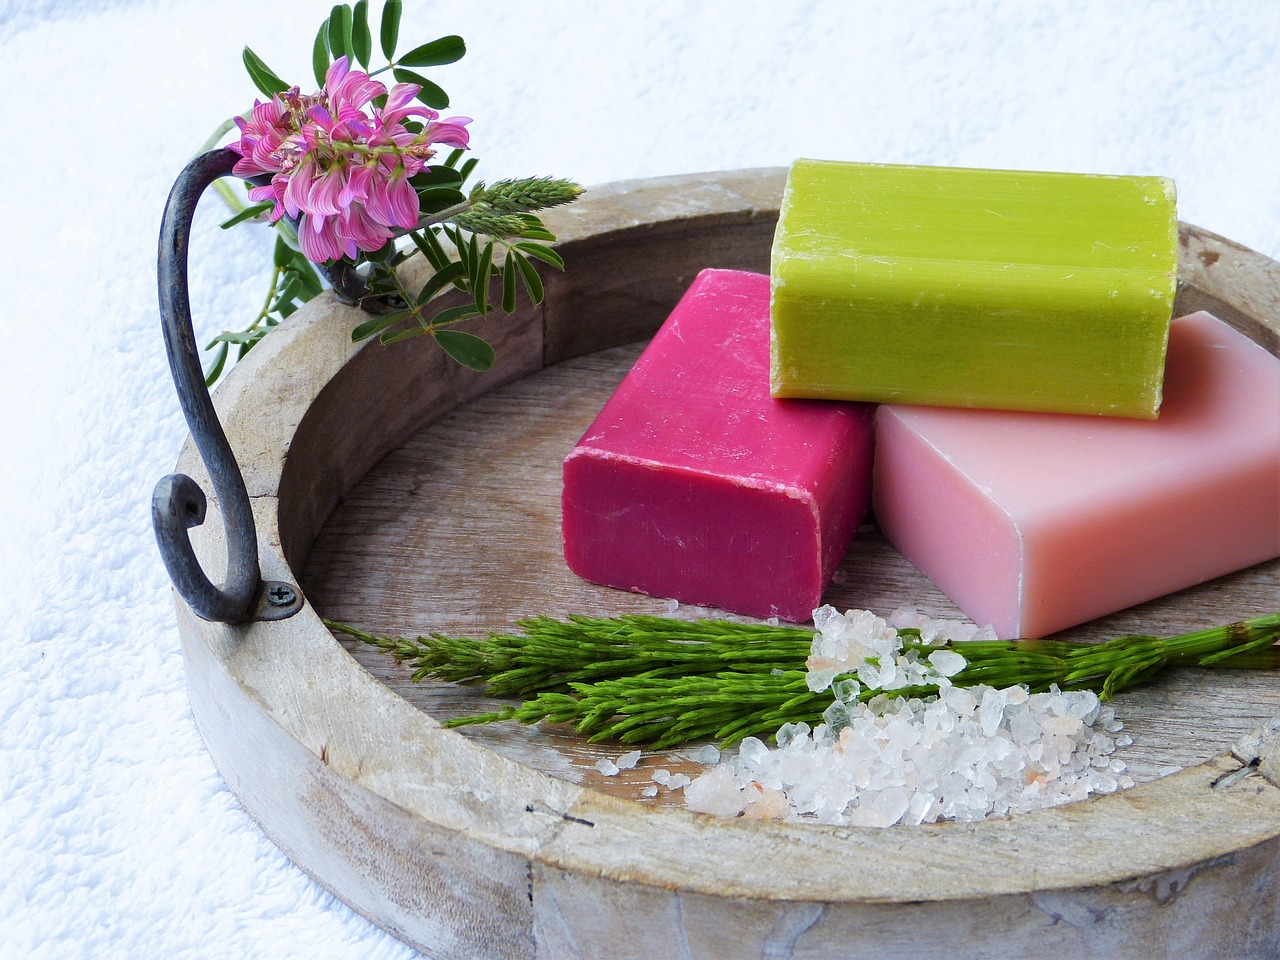 Amsterdam's Soap Stories has a colourful collection of bath and skincare products (Image Credit: Pixabay)